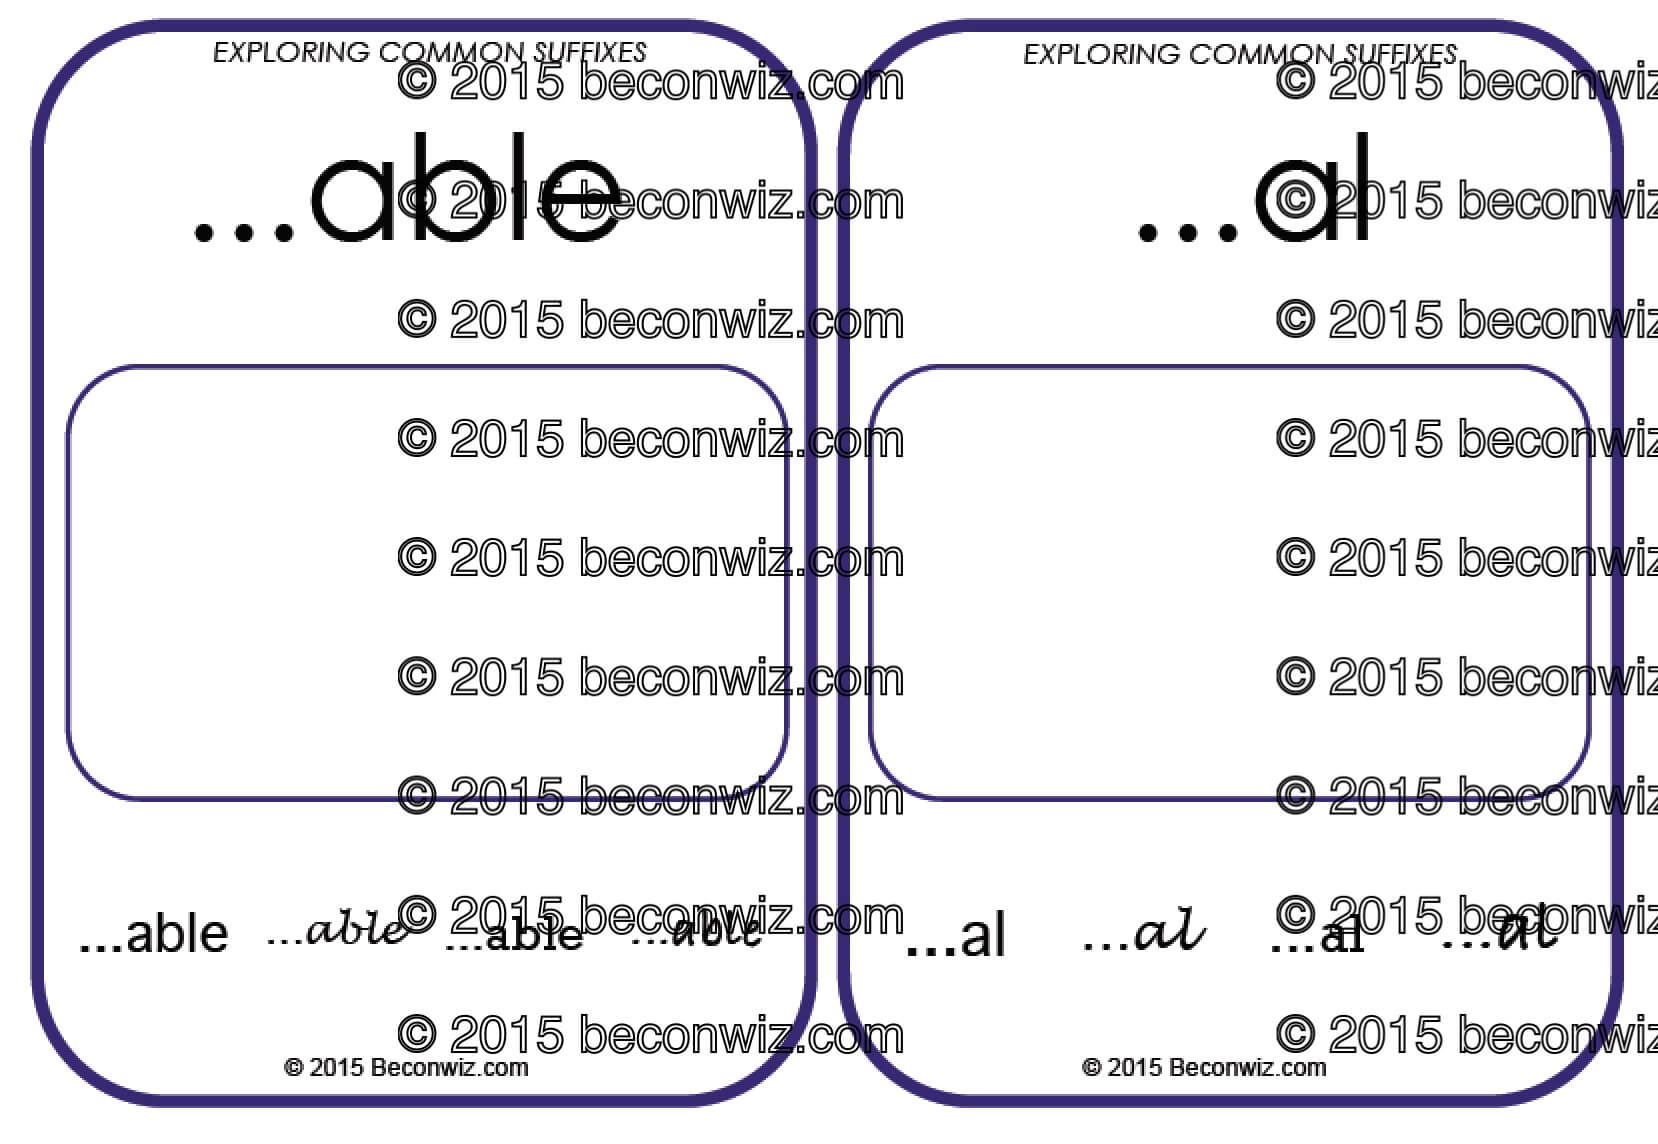 Teaching Suffixes Printable Suffix Resources